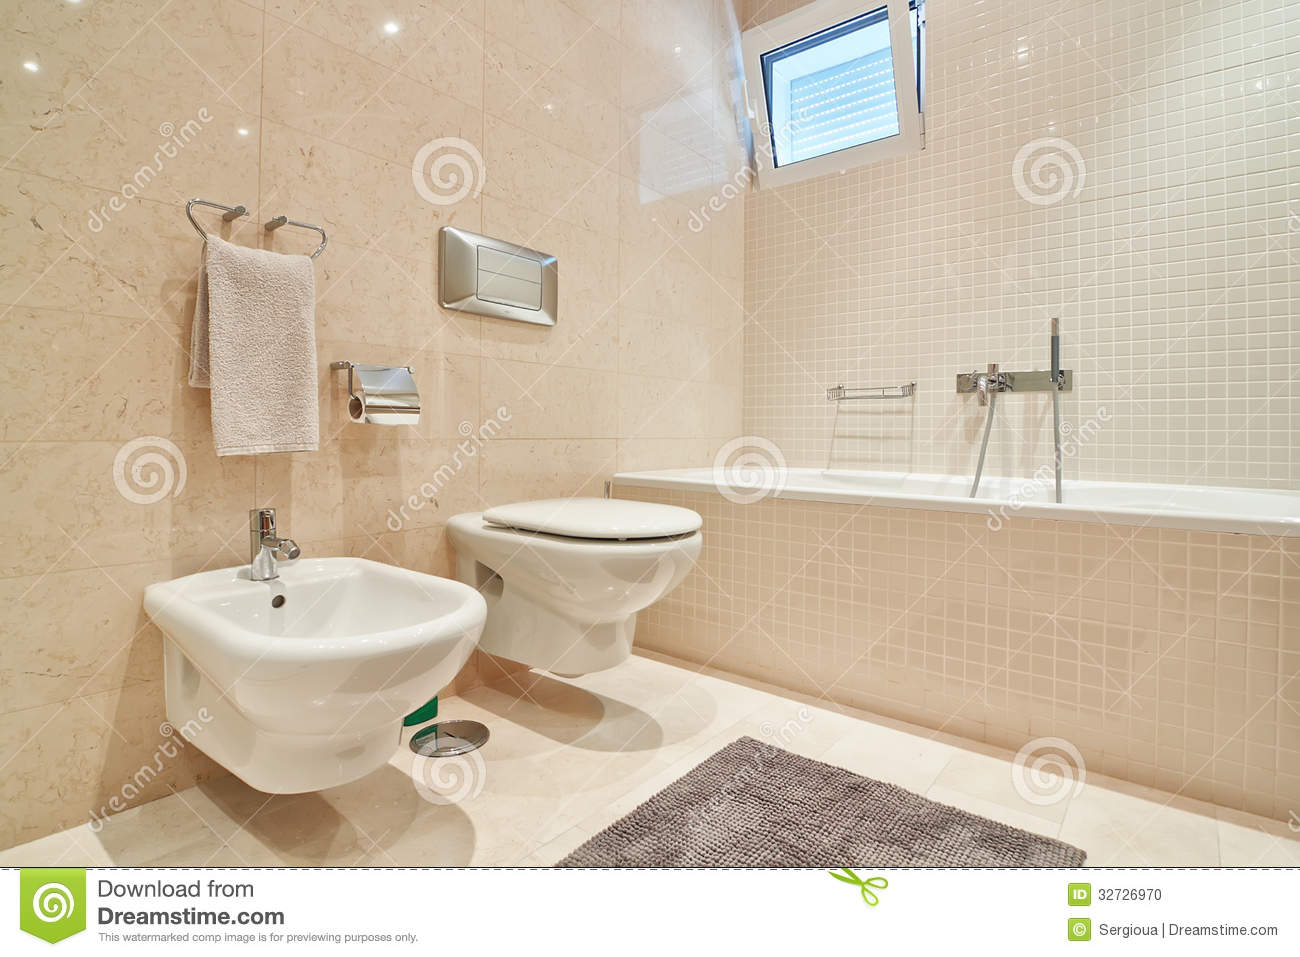 Modern Toilet With Ceramic Tiles And Bathroom Stock Photo